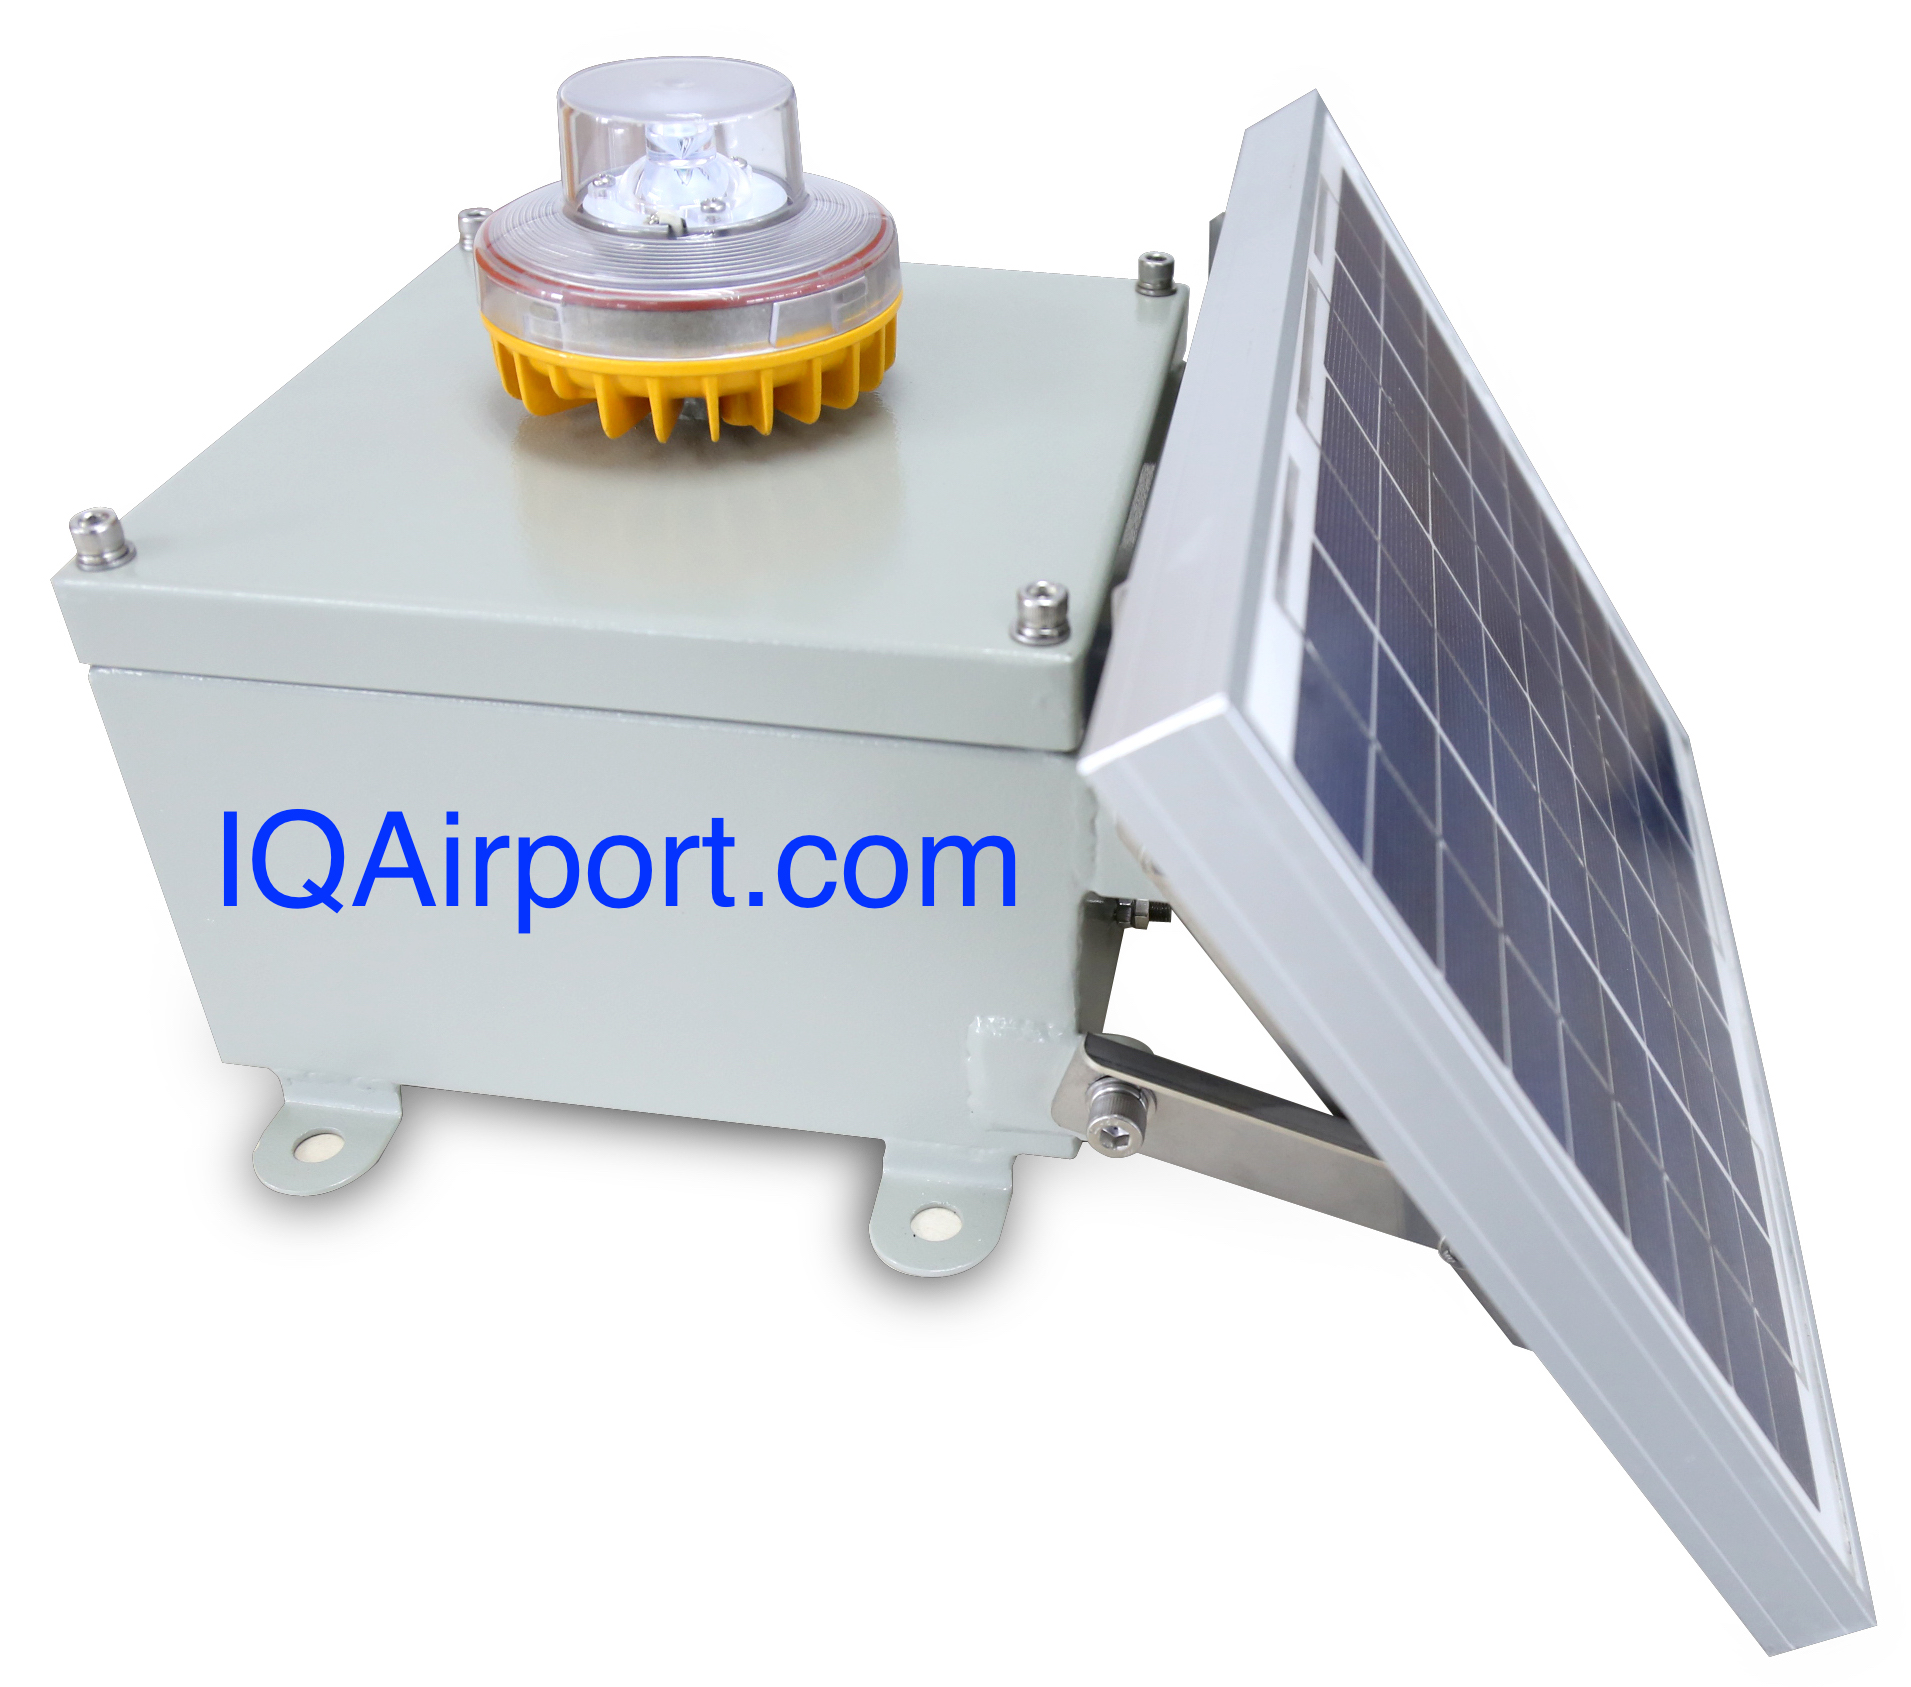 IQAirport.com Solar Obstruction Light Approved for FAA